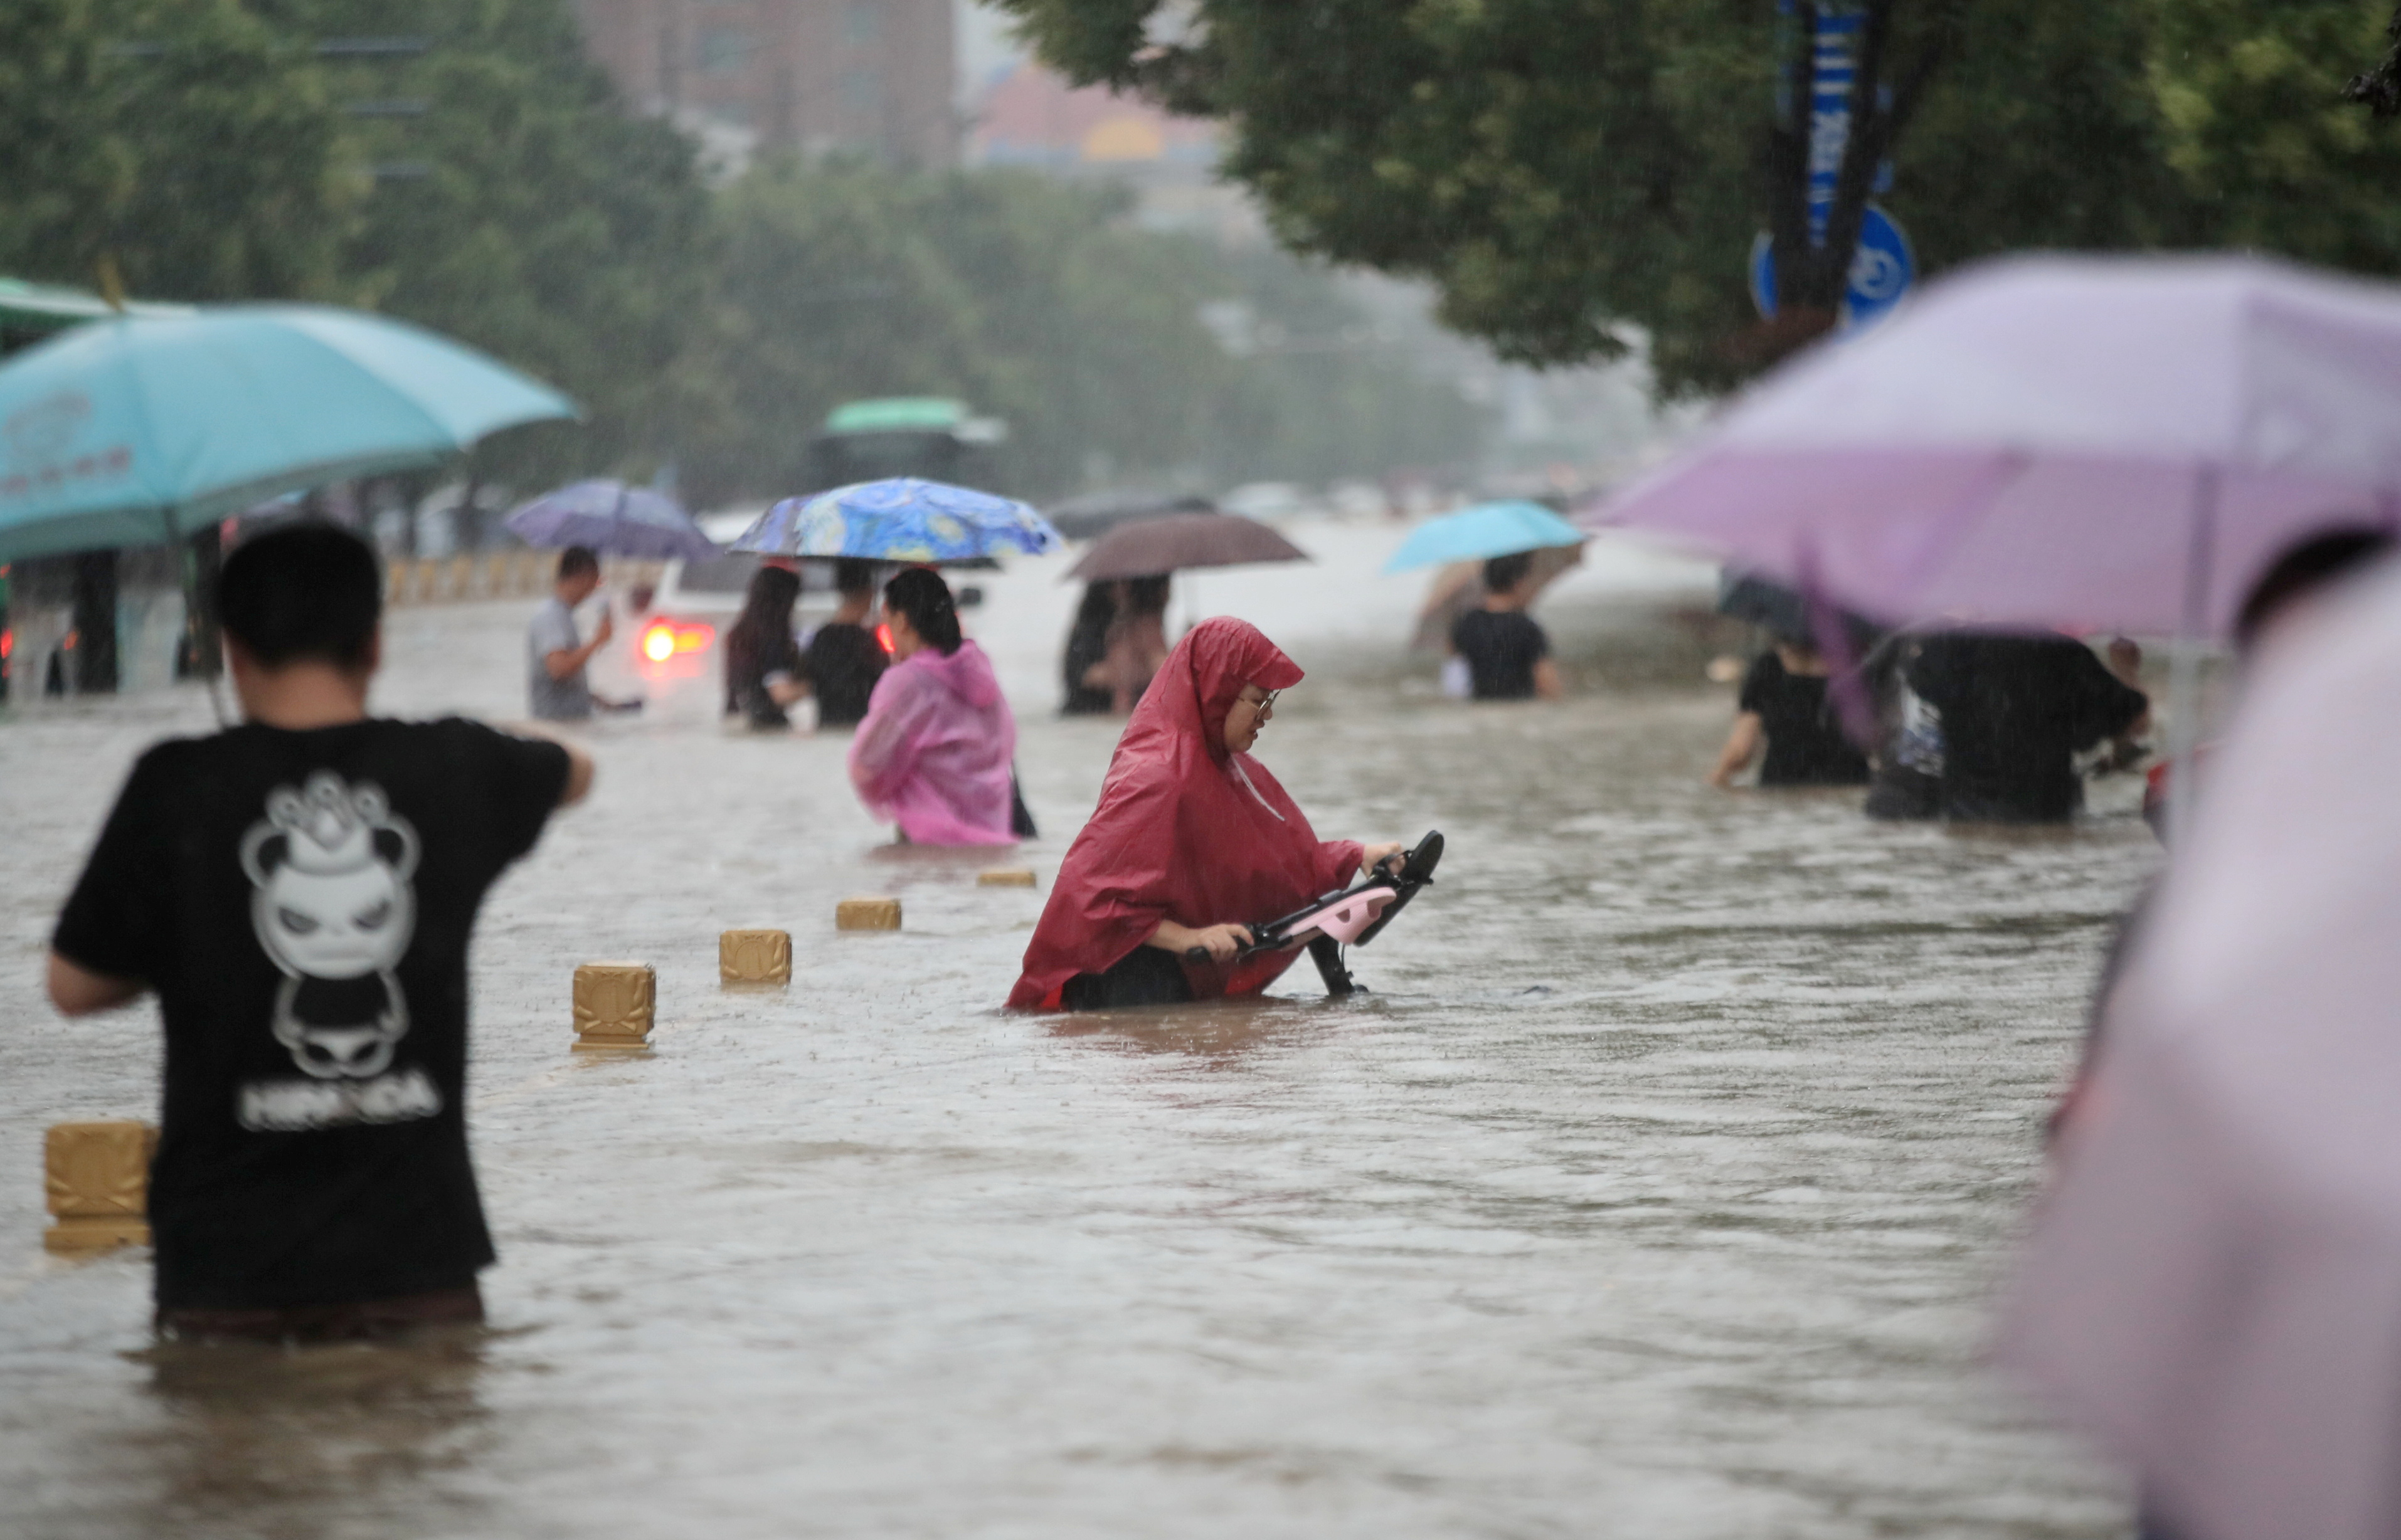 Residents wade through floodwaters on a flooded road amid heavy rainfall in Zhengzhou, Henan province, China July 20, 2021. China Daily via REUTERS